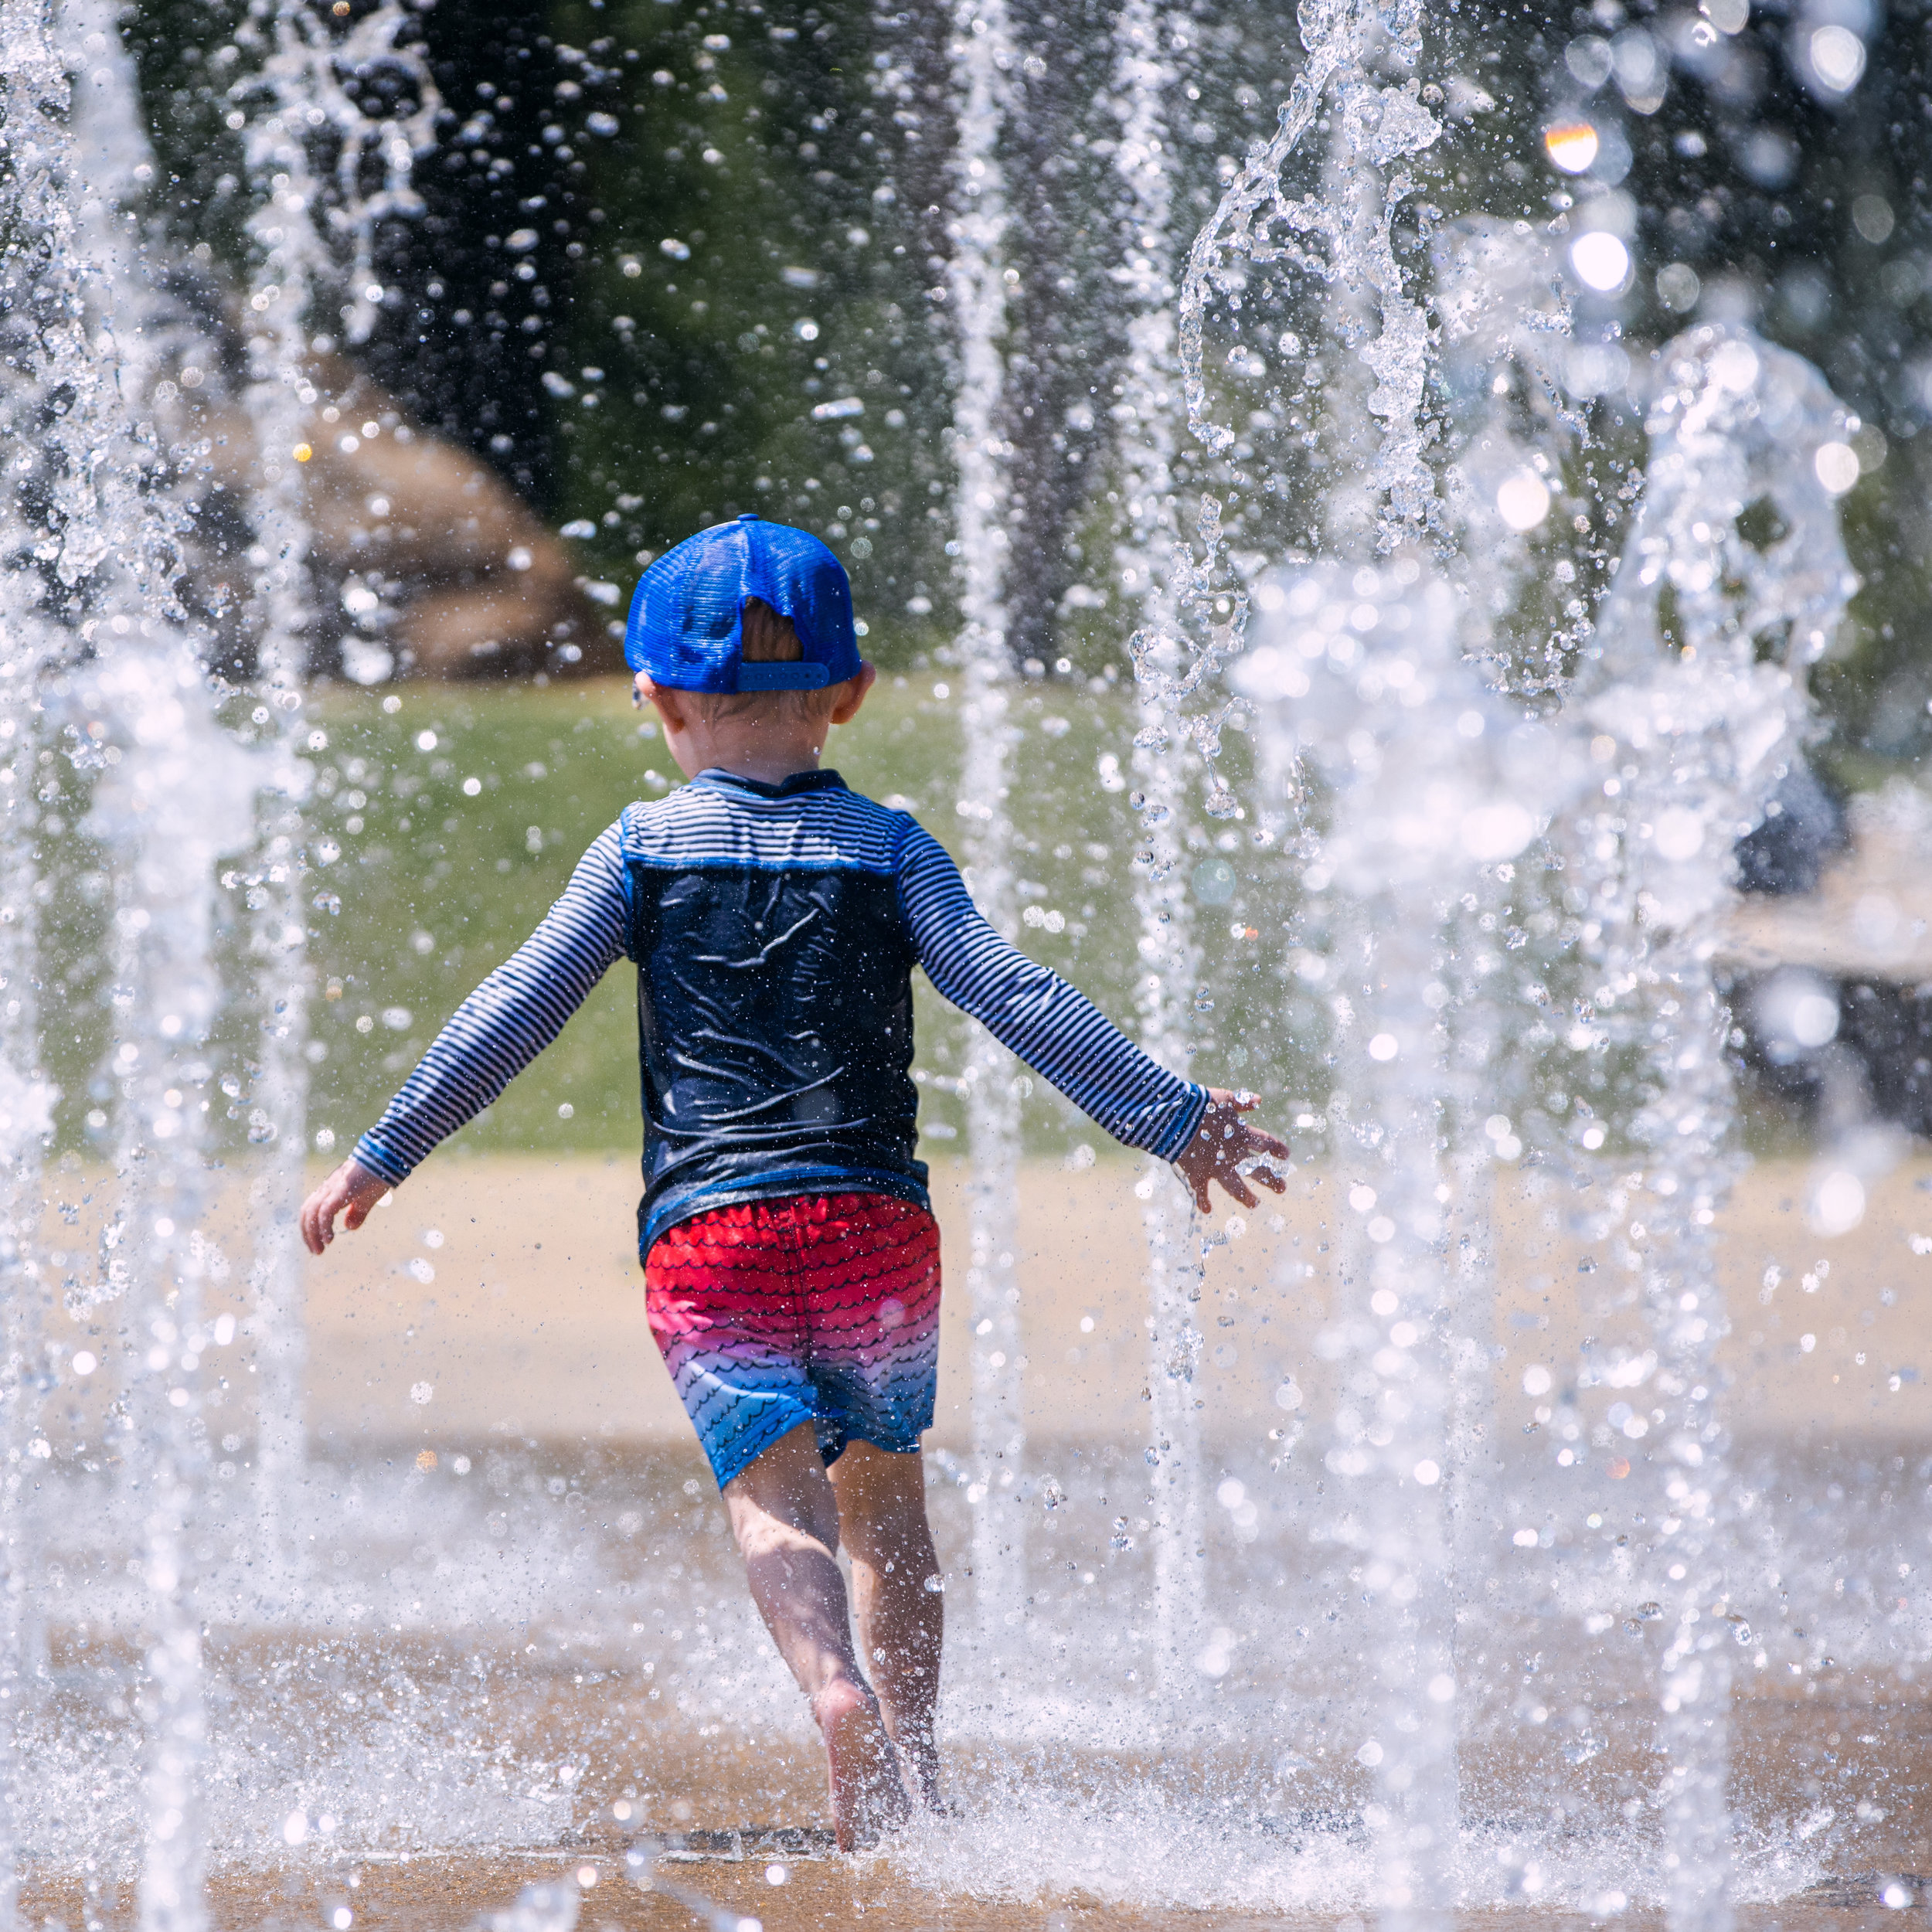 RushSouth_Splash Pad_2.jpg